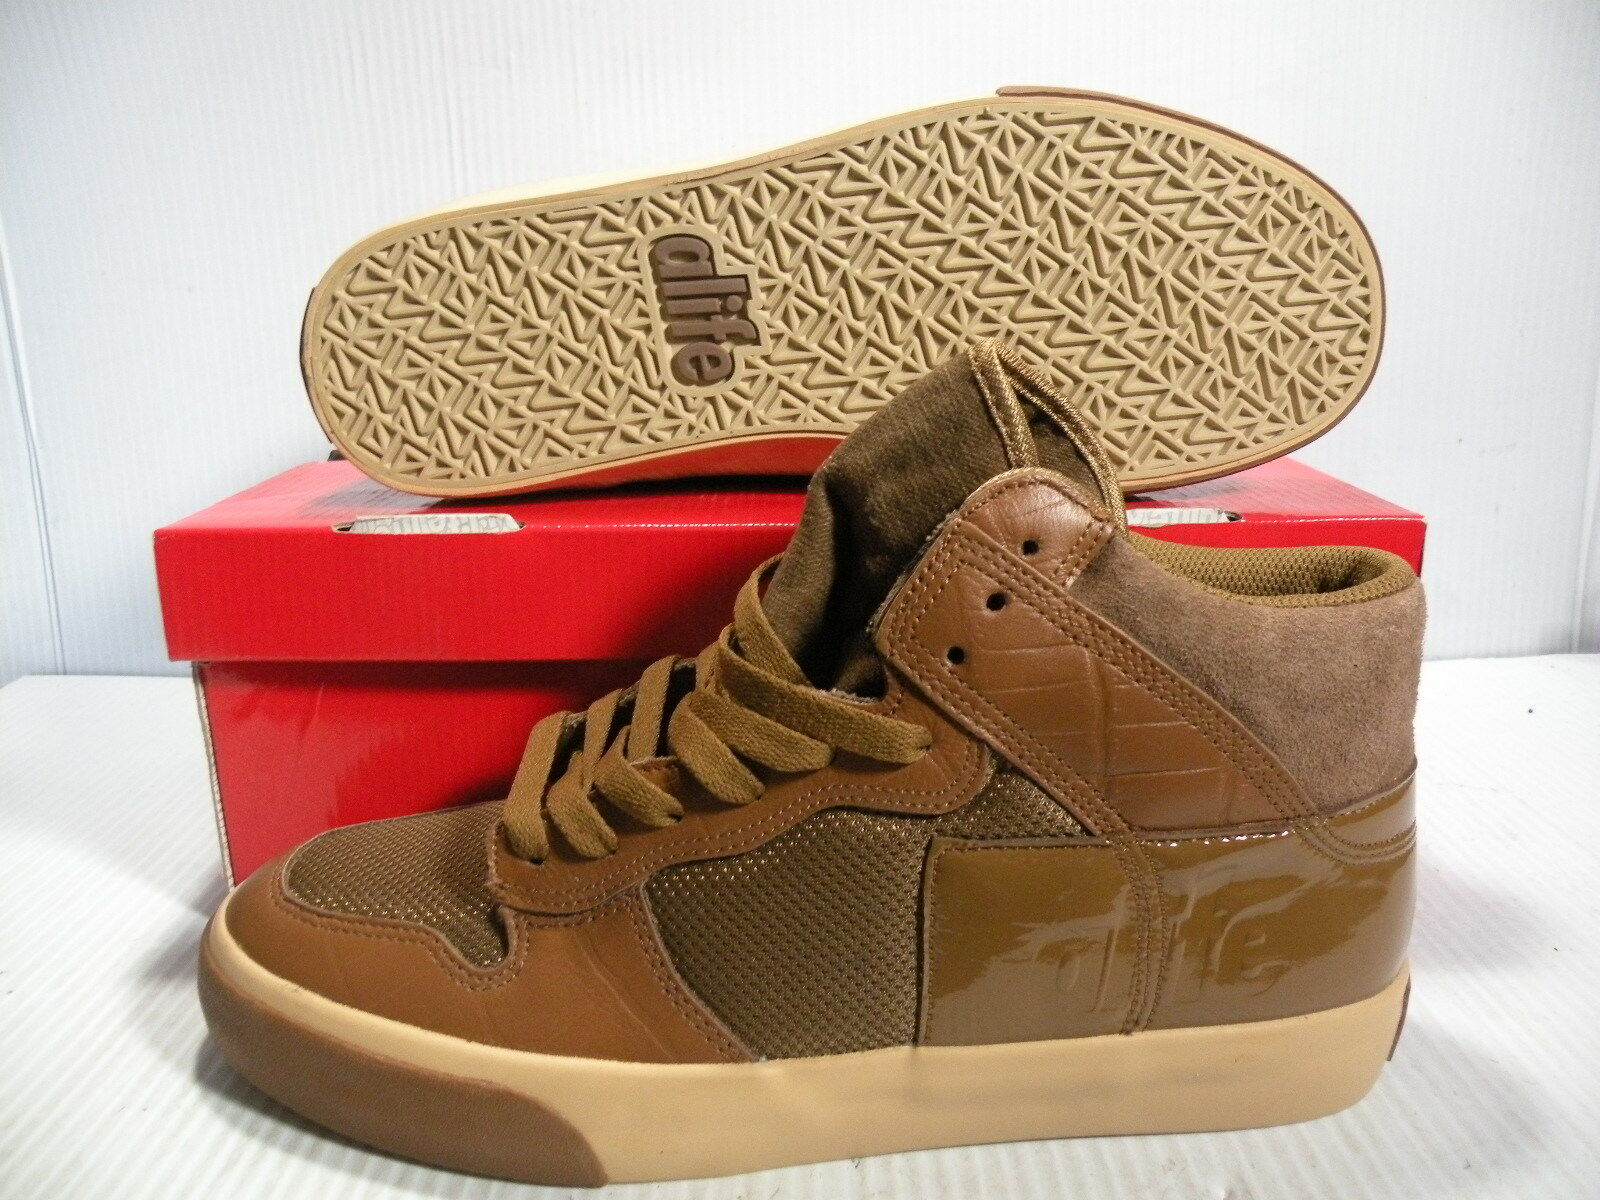 ALIFE EVERYBODY HI AMERICAS CUP BROWN SNEAKERS Uomo SHOES BROWN CUP F92EVHCP3 SIZE 8.5 NEW 15e2d9